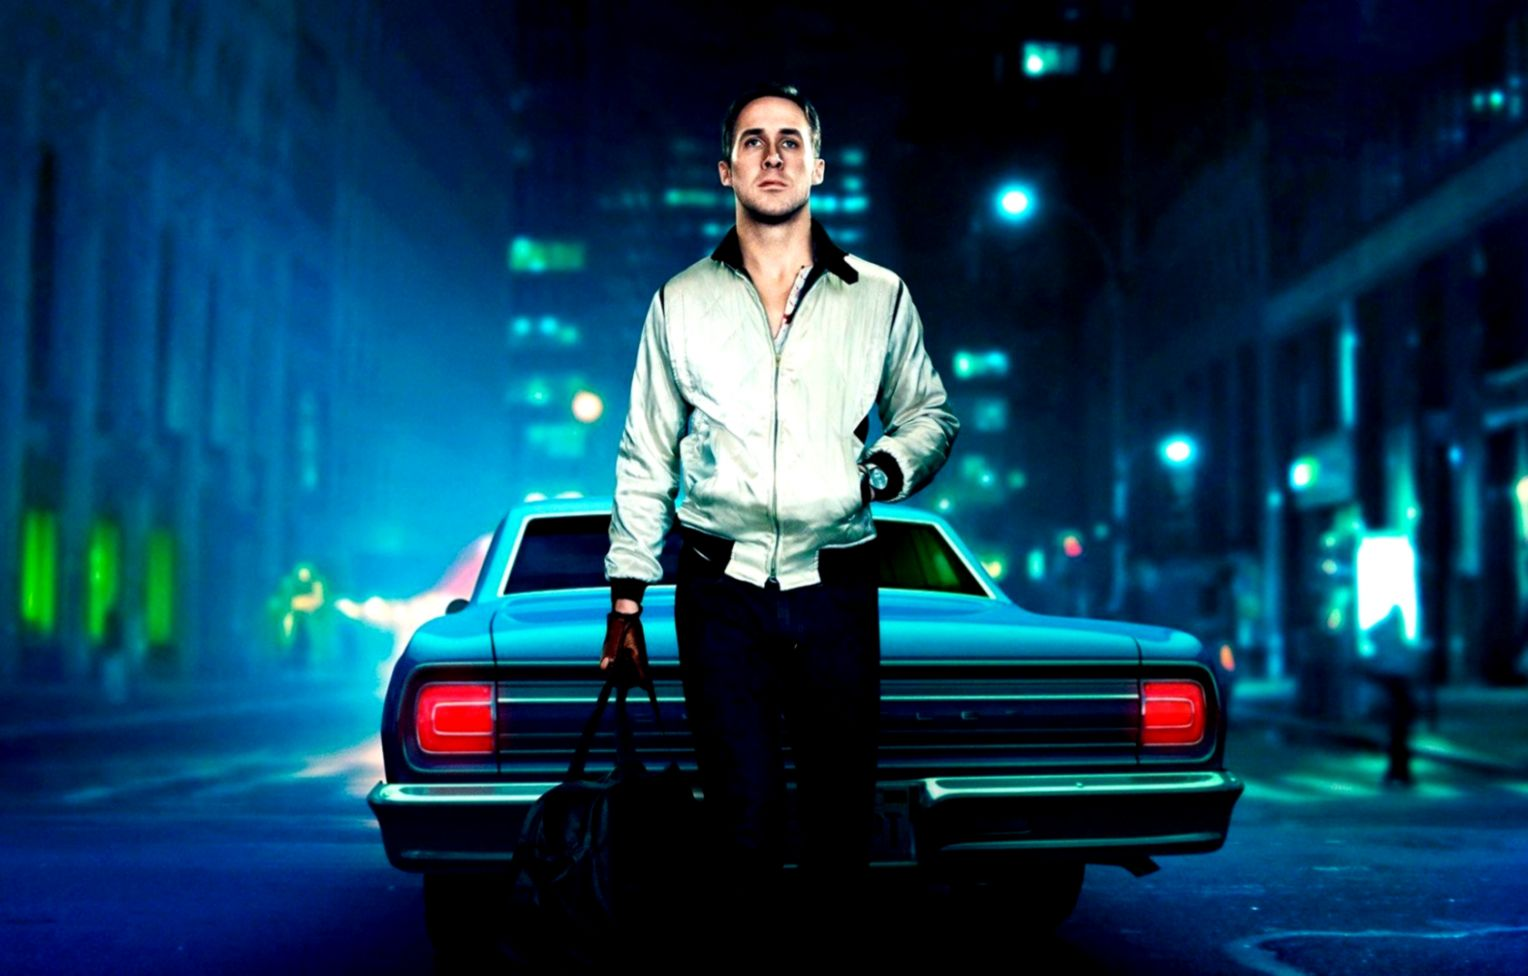 HD Wallpaper Of Ryan Gosling In The Movie Drive PaperPull